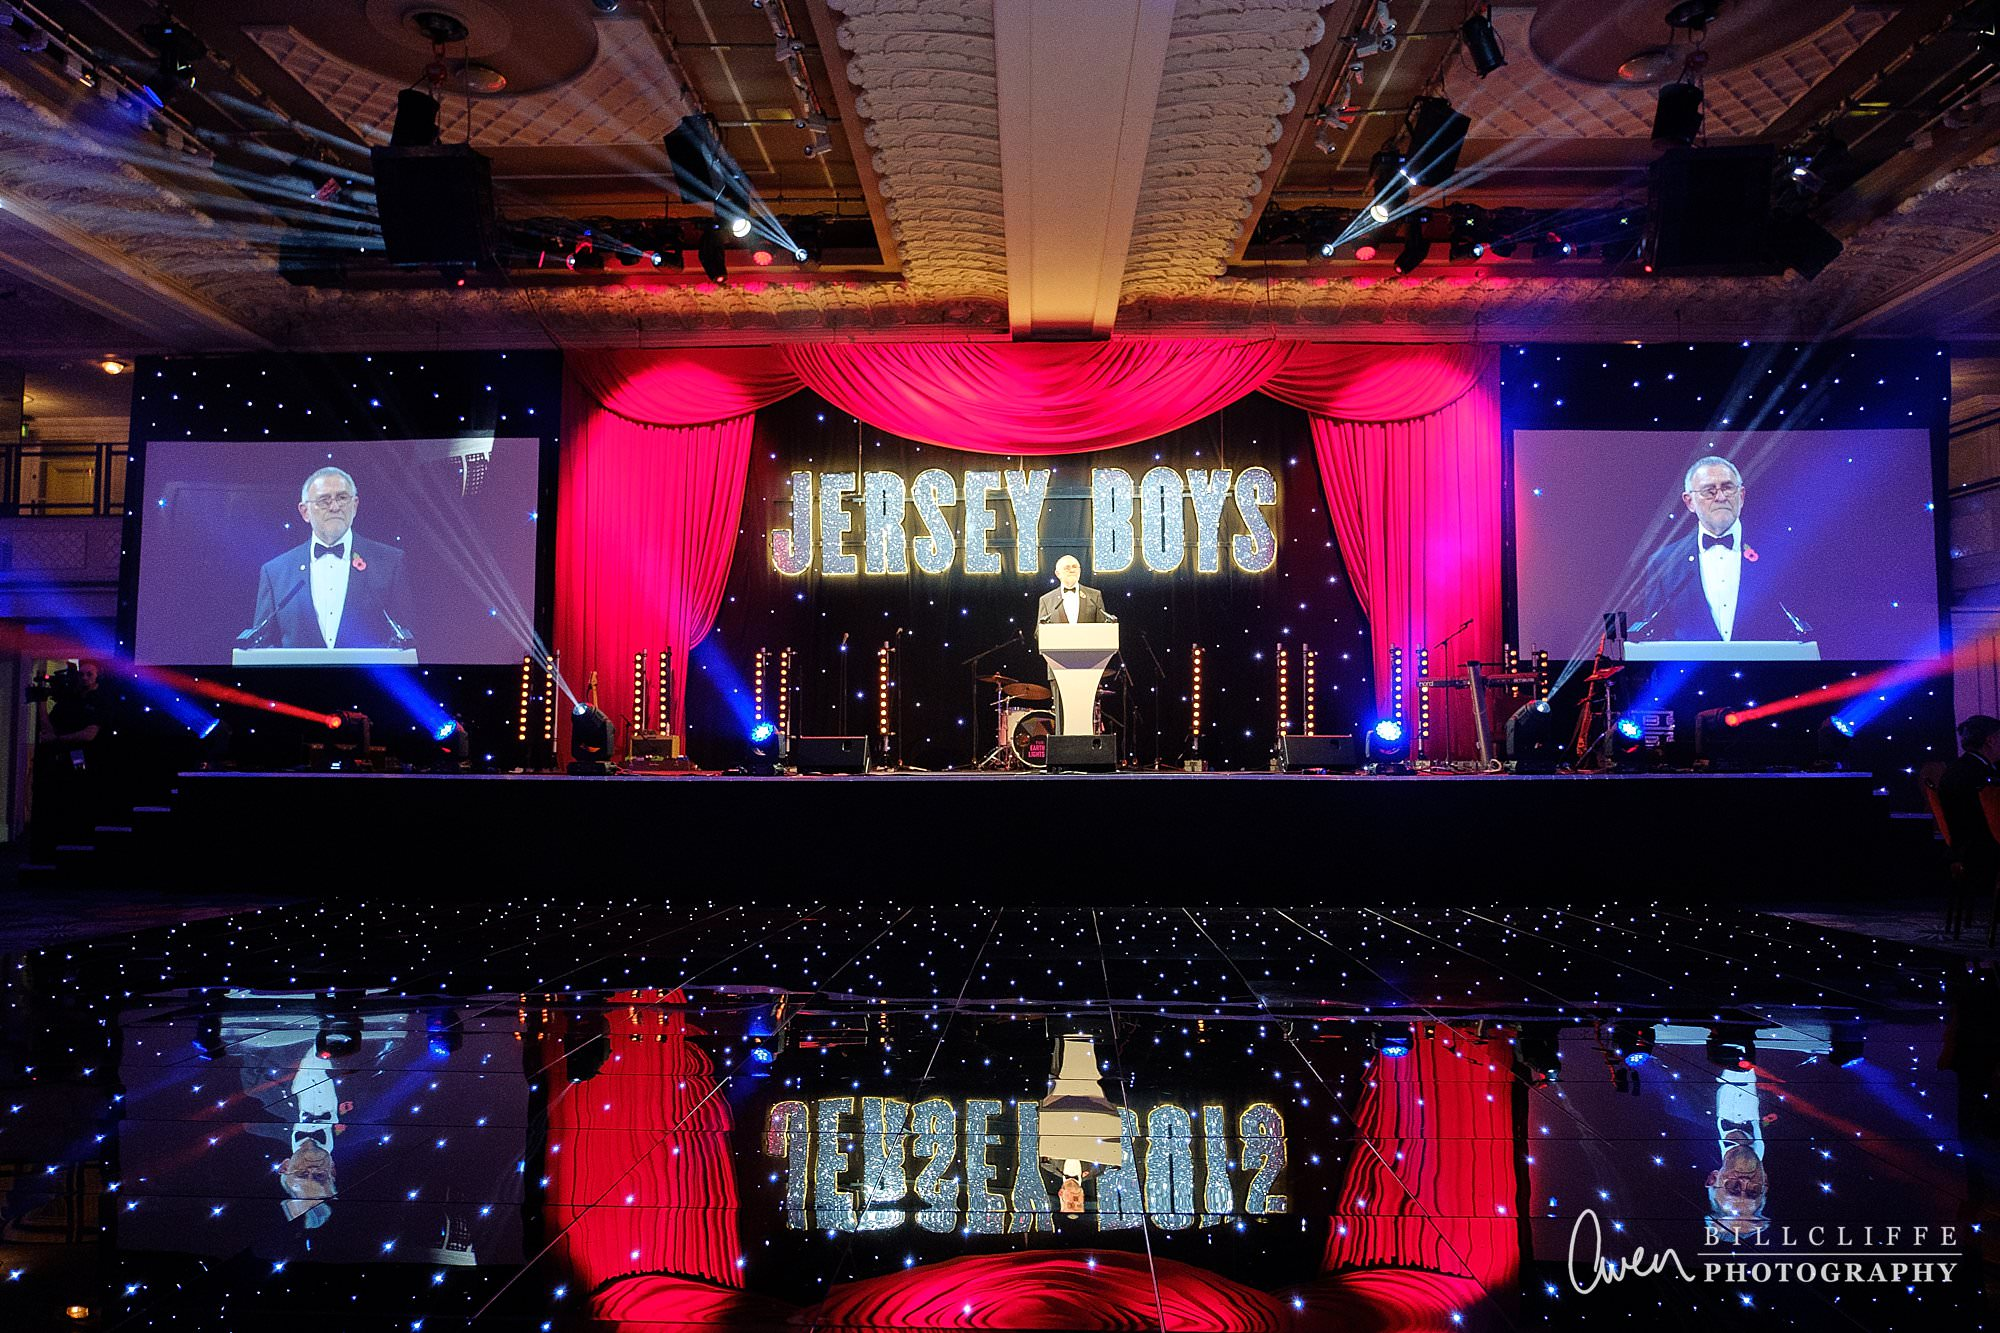 london event photographer park lane pb 007 - A Luxury Ball at Grosvenor House Park Lane